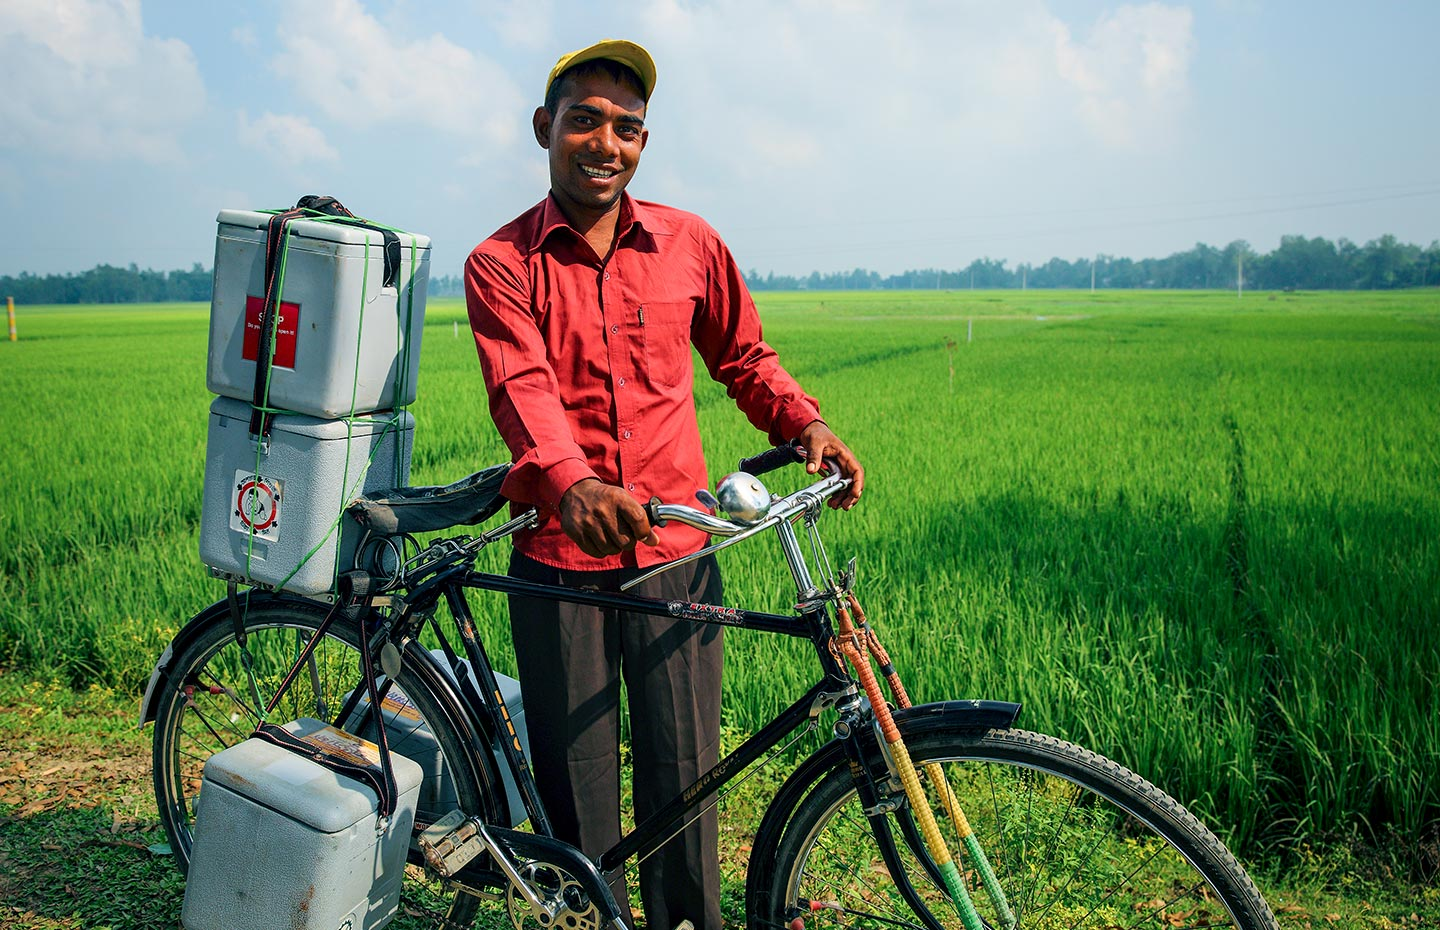 Transporting vaccines by bicycle. Credit: Gavi/2014/GMB Akash